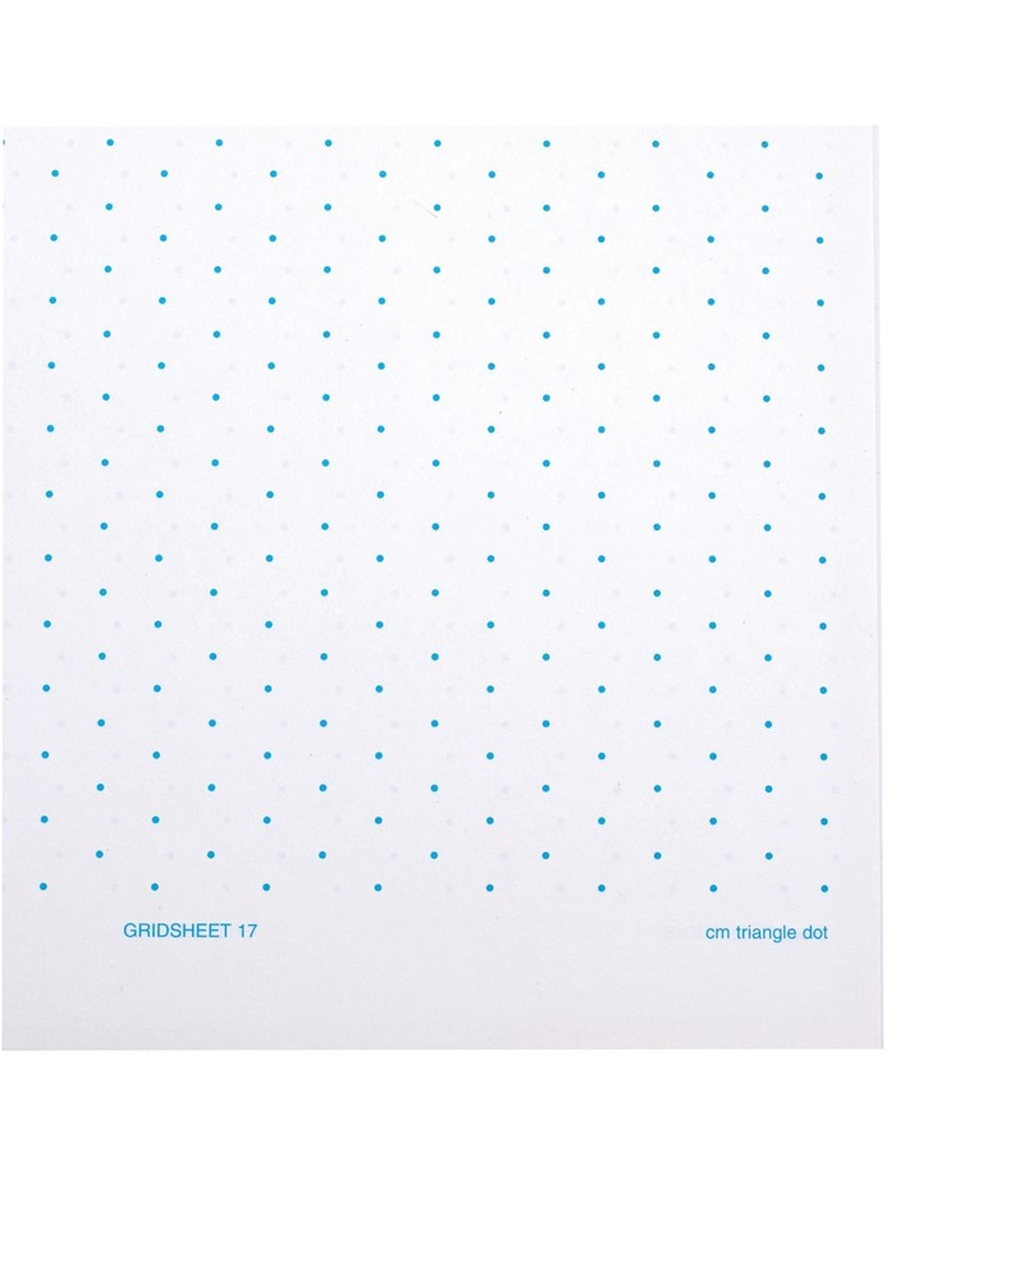 A4 10mm Triangular Dots Grid Sheet